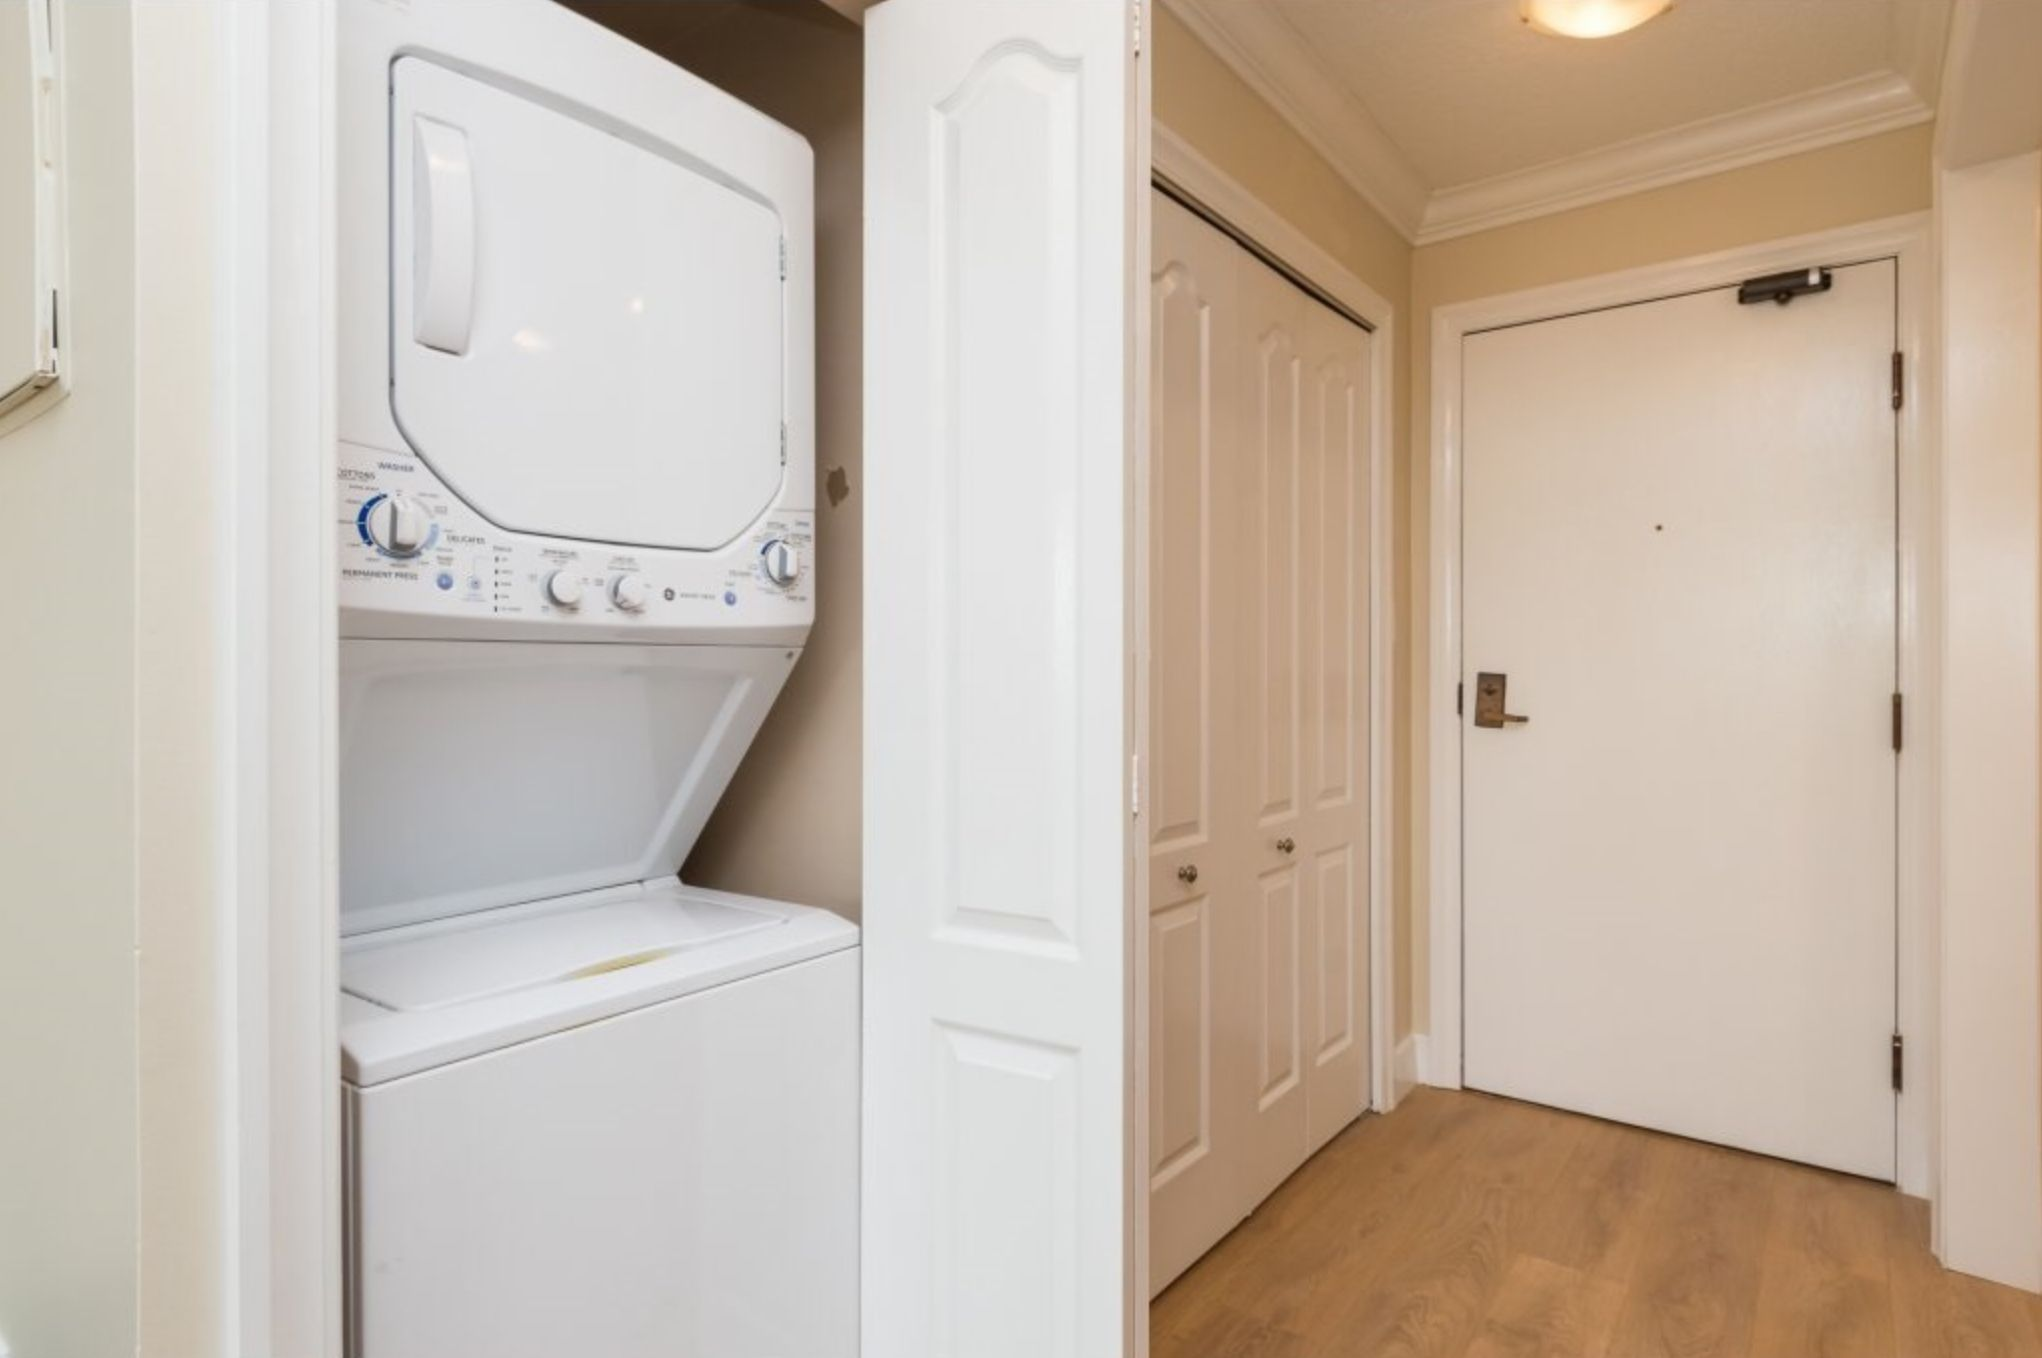 Photo 14: Photos: 410, 15111 Russell Avenue: White Rock Condo for sale (South Surrey White Rock)  : MLS®# R2152299